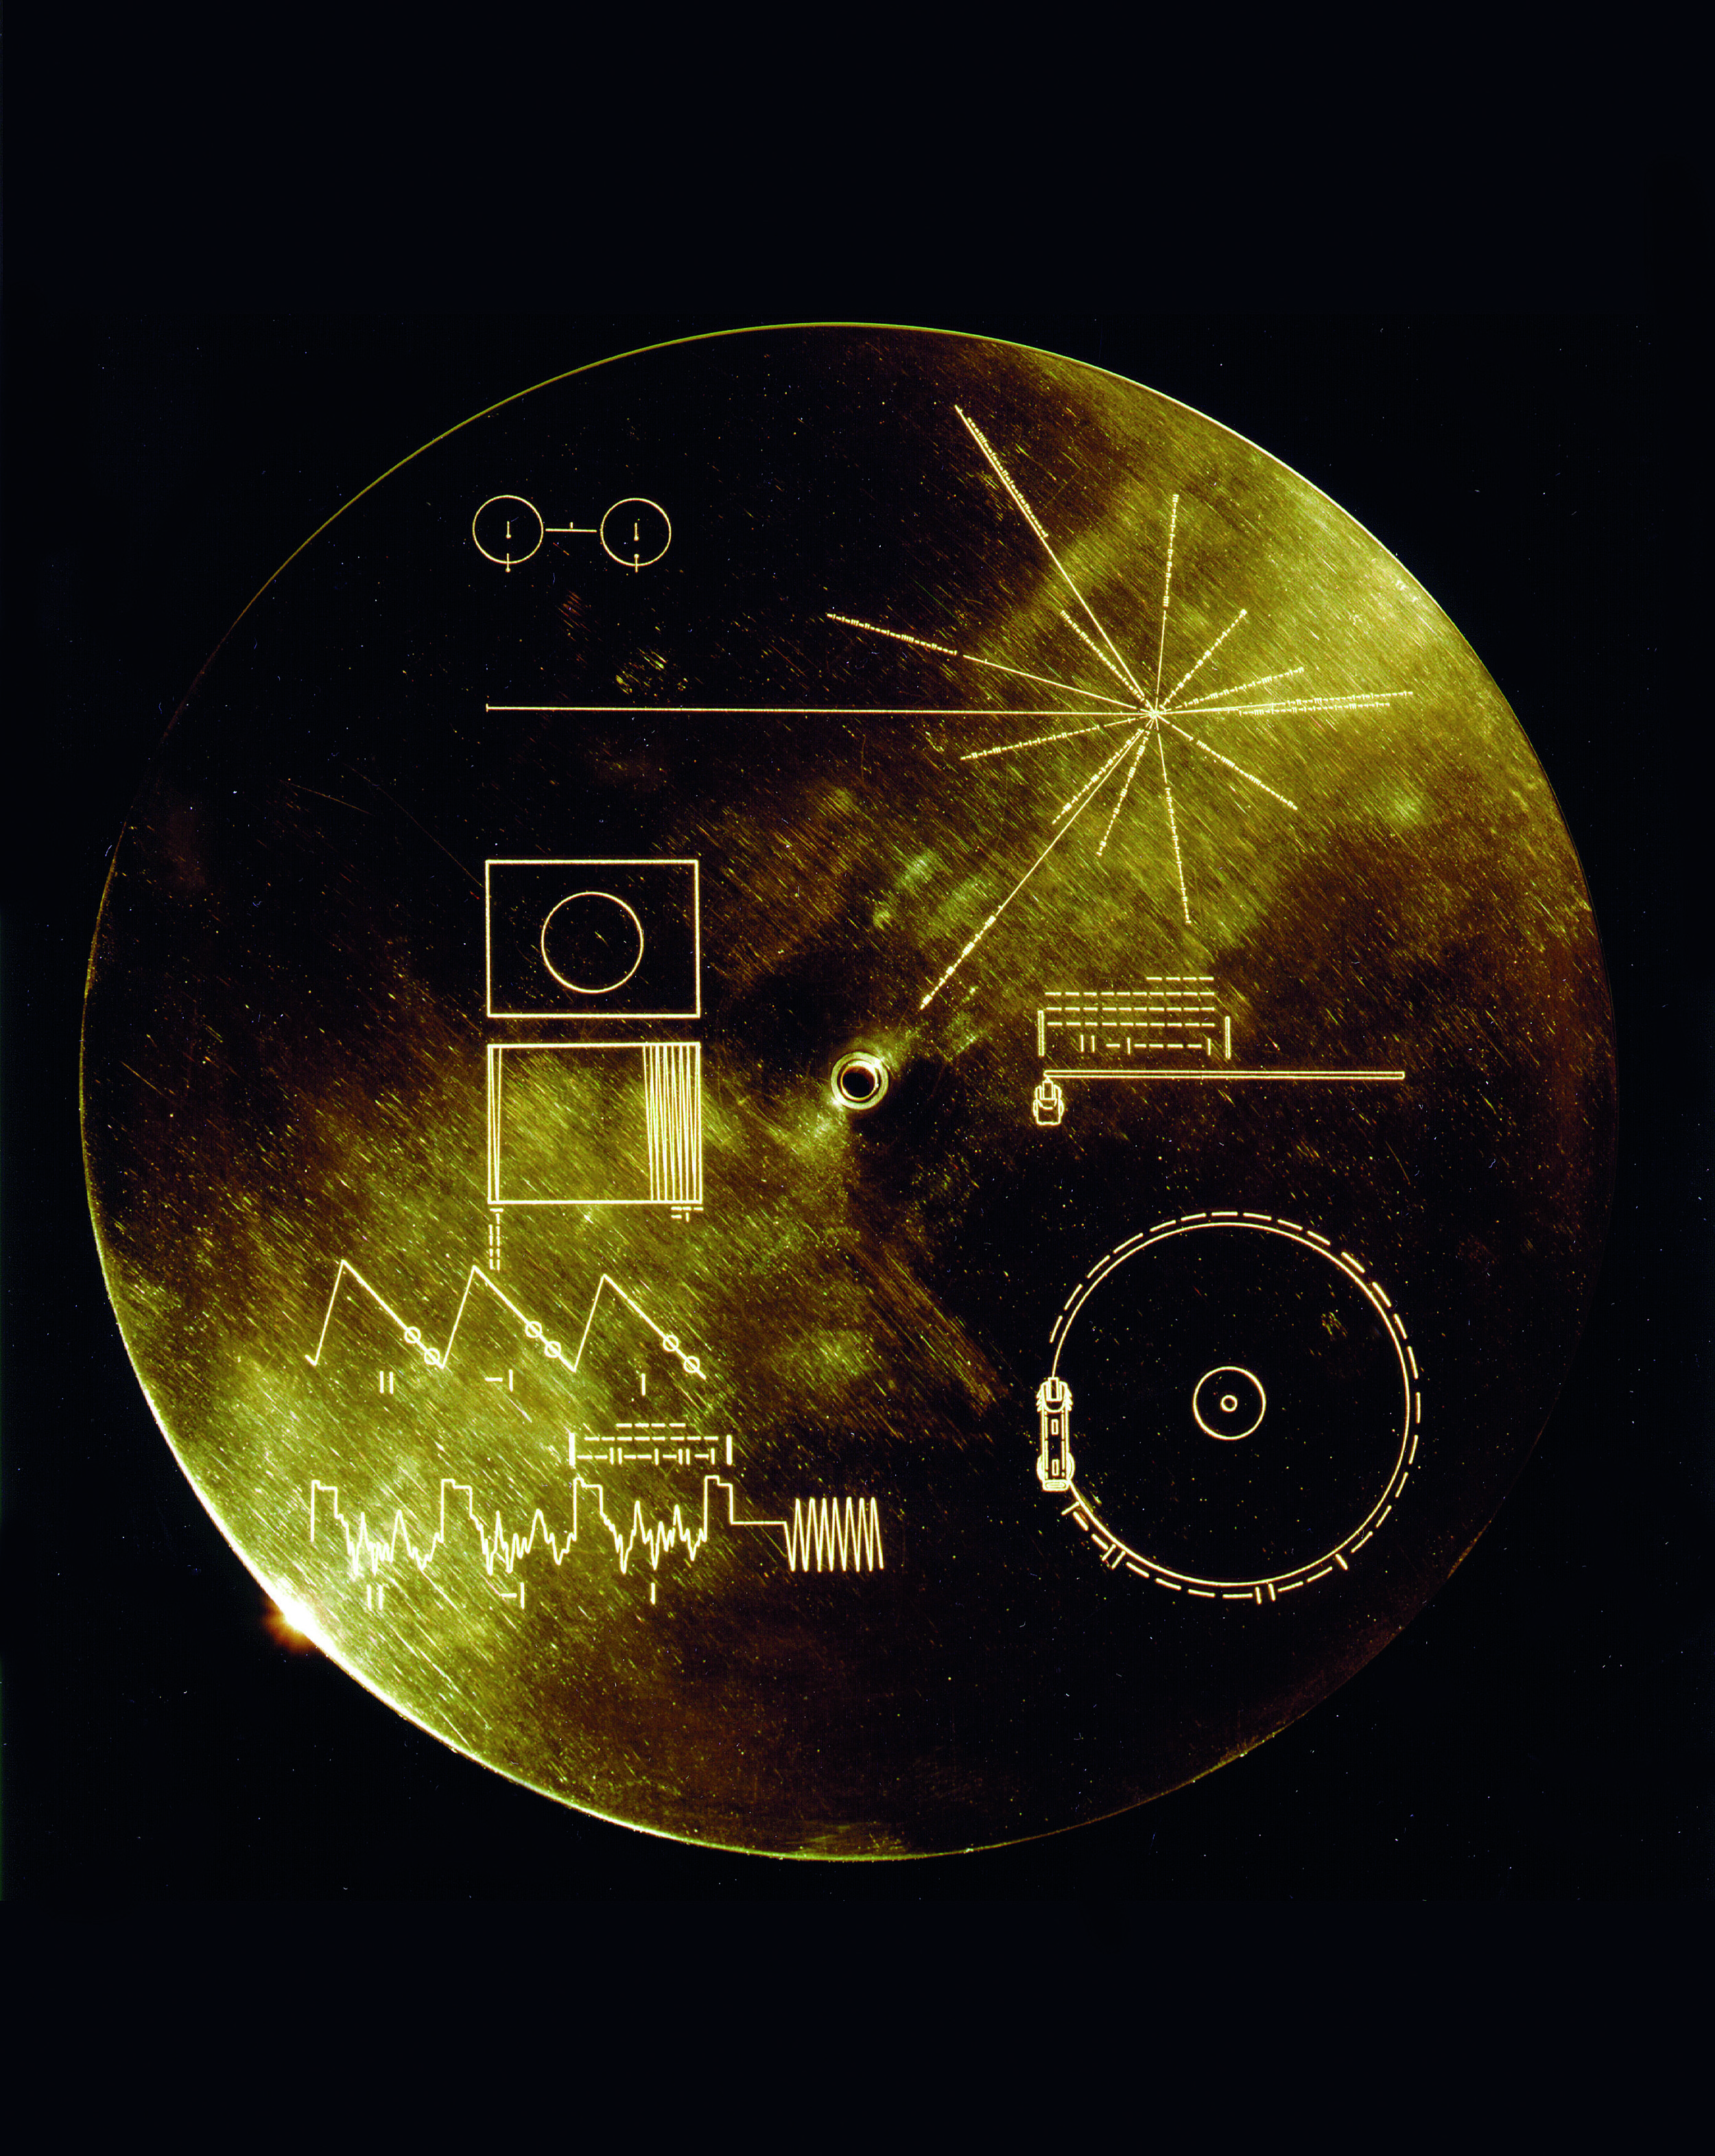 Press play: A gold aluminium cover designed to protect the Sounds of Earth's gold-plated records from micrometeorite bombardment during its epic, interstellar journey, also featured playing instructions to any alien who found the record. Photo courtesy NASA.